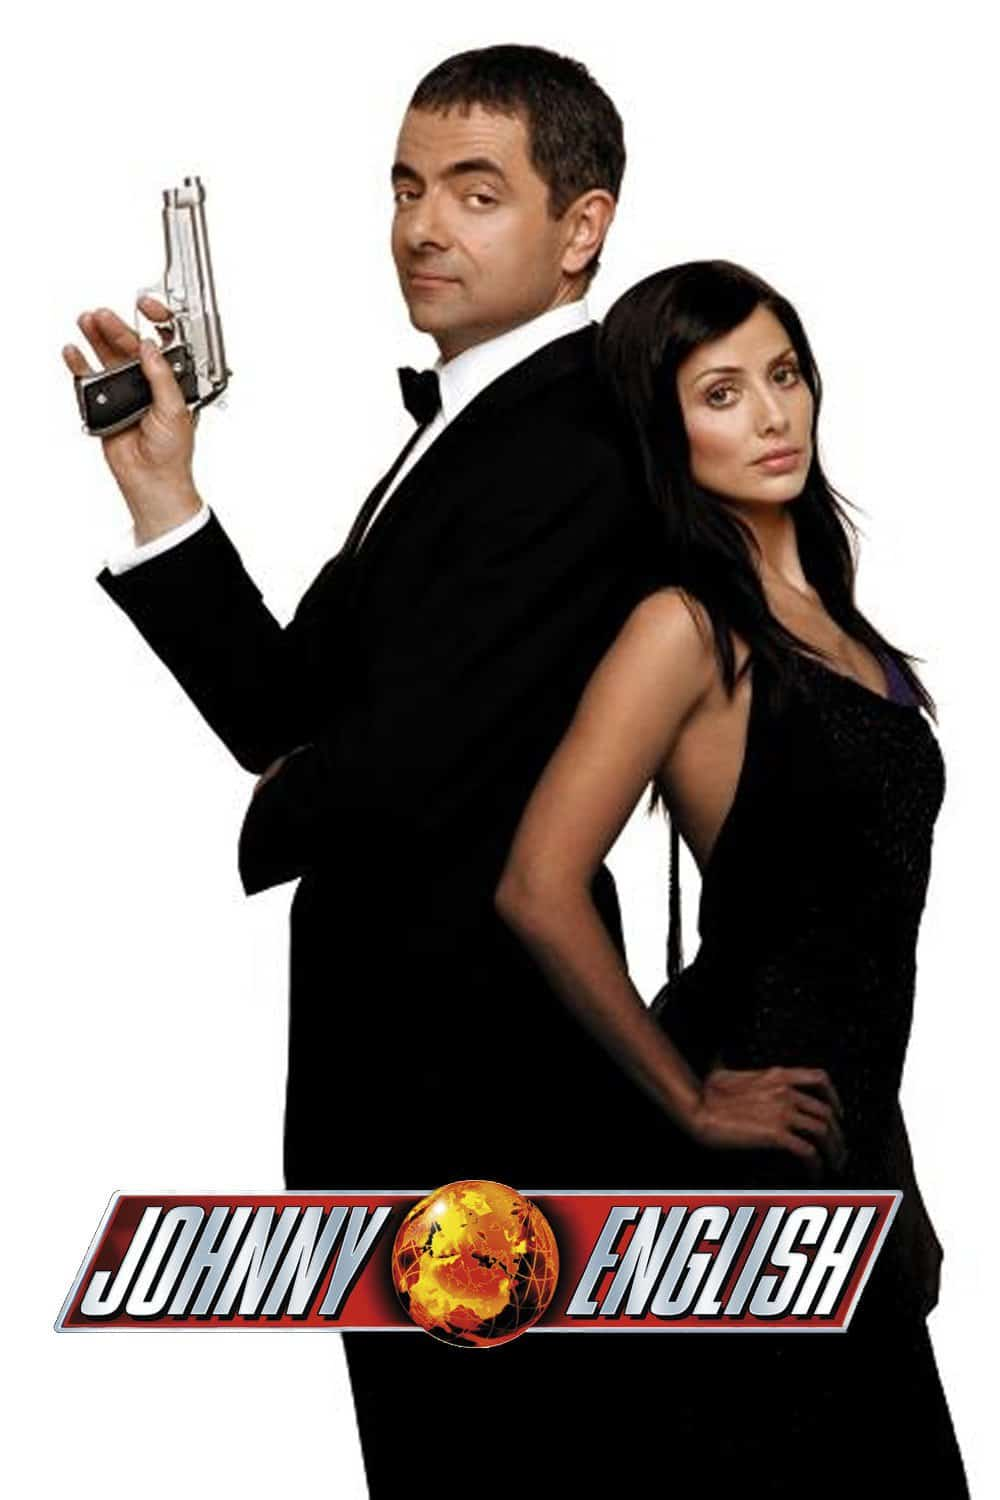 Johnny English, 2003